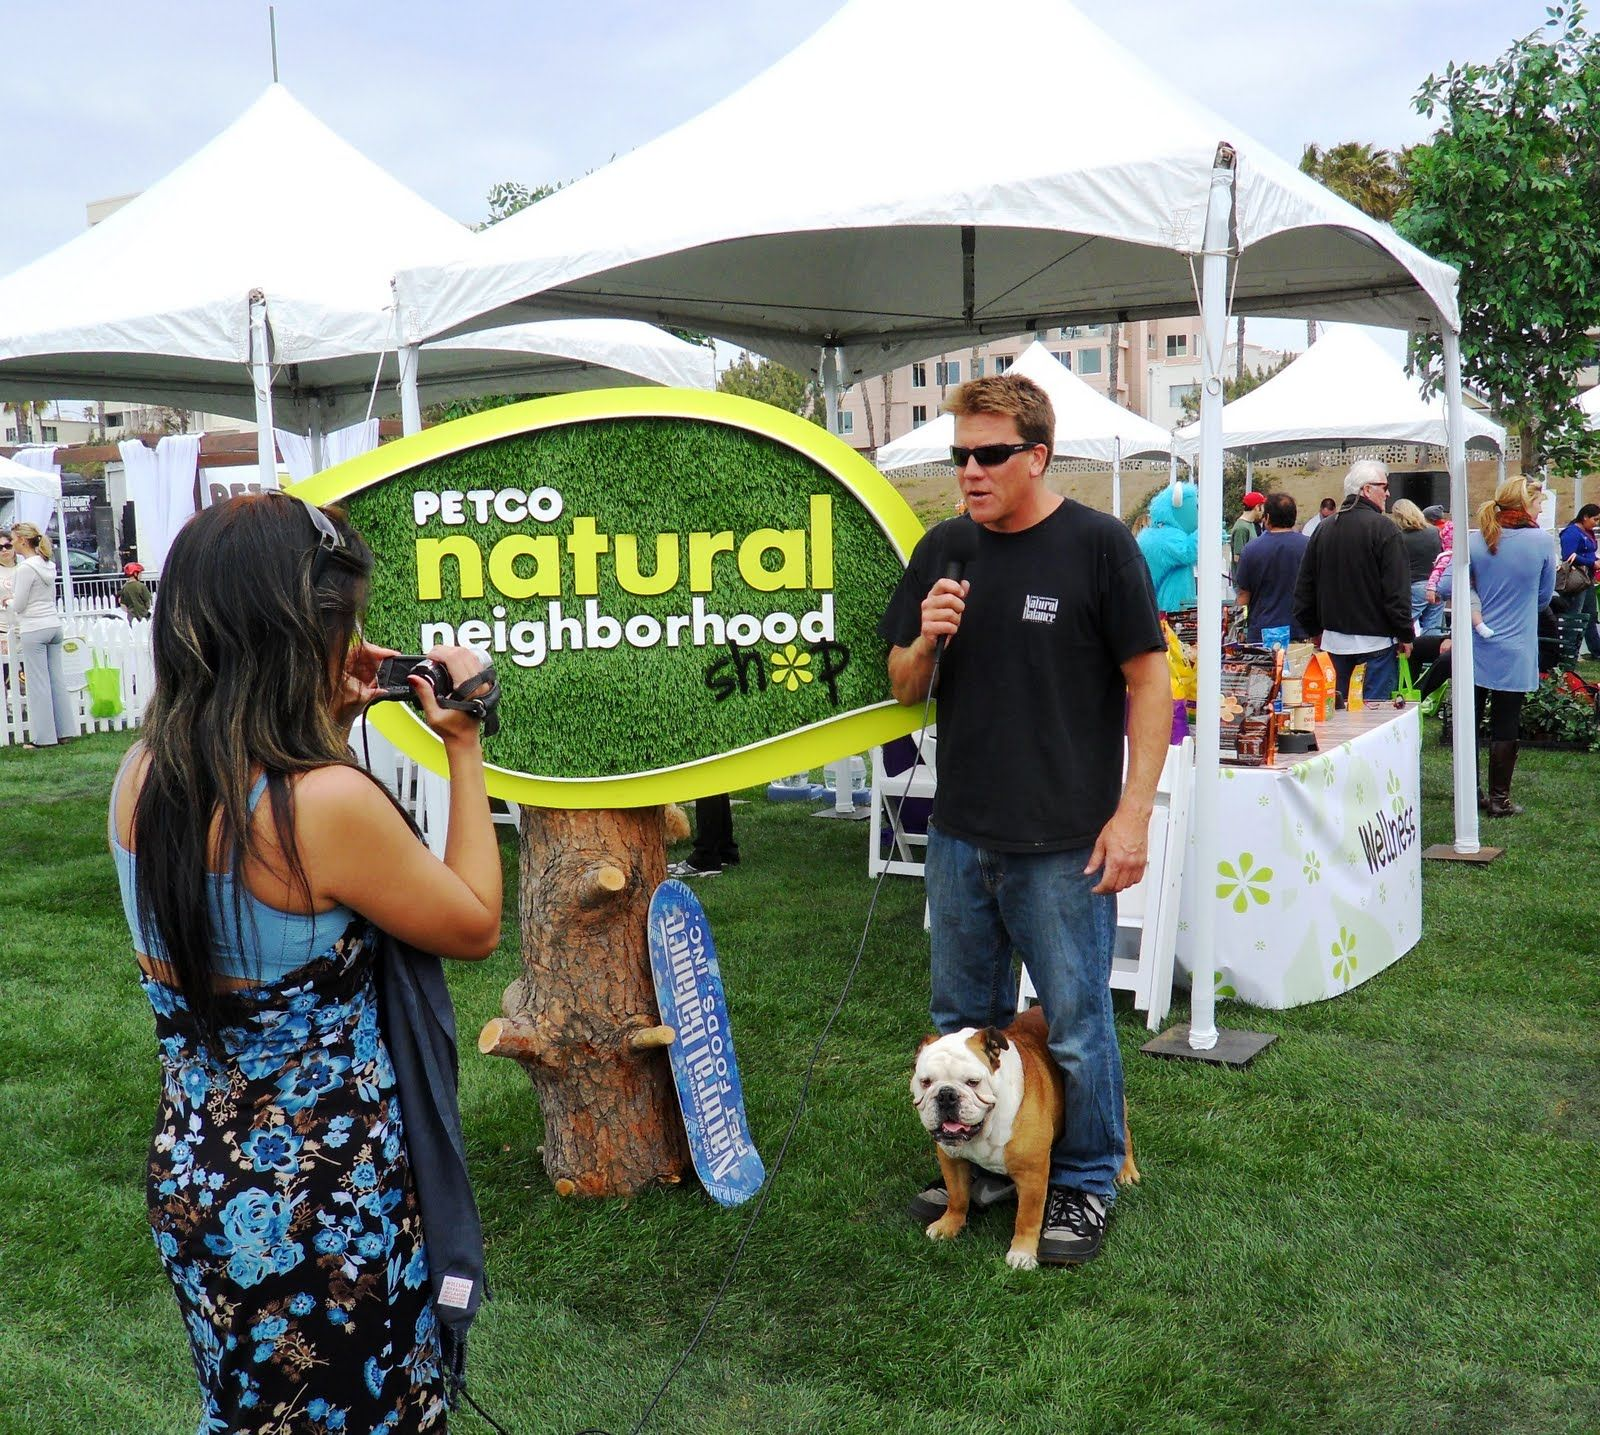 Me and my dad getting interviewed at Petco's Natural Neighborhood festival in Santa Monica.